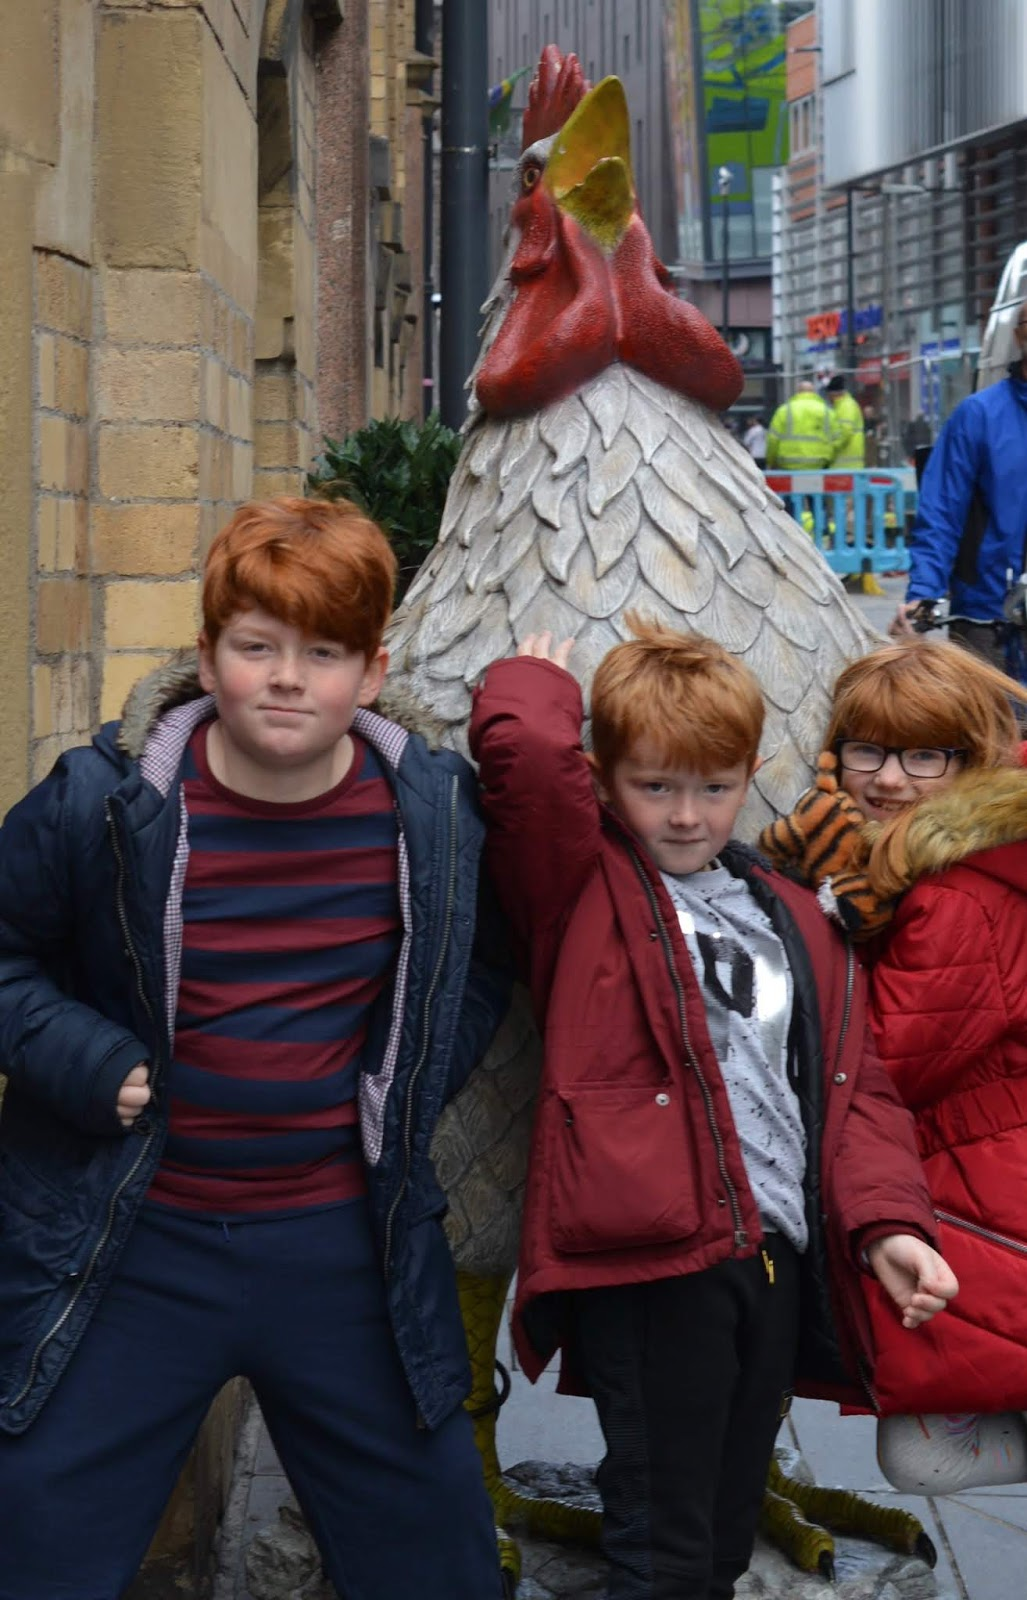 How to Spend 24 Hours in Liverpool with Tweens - Yard and coop giant chicken